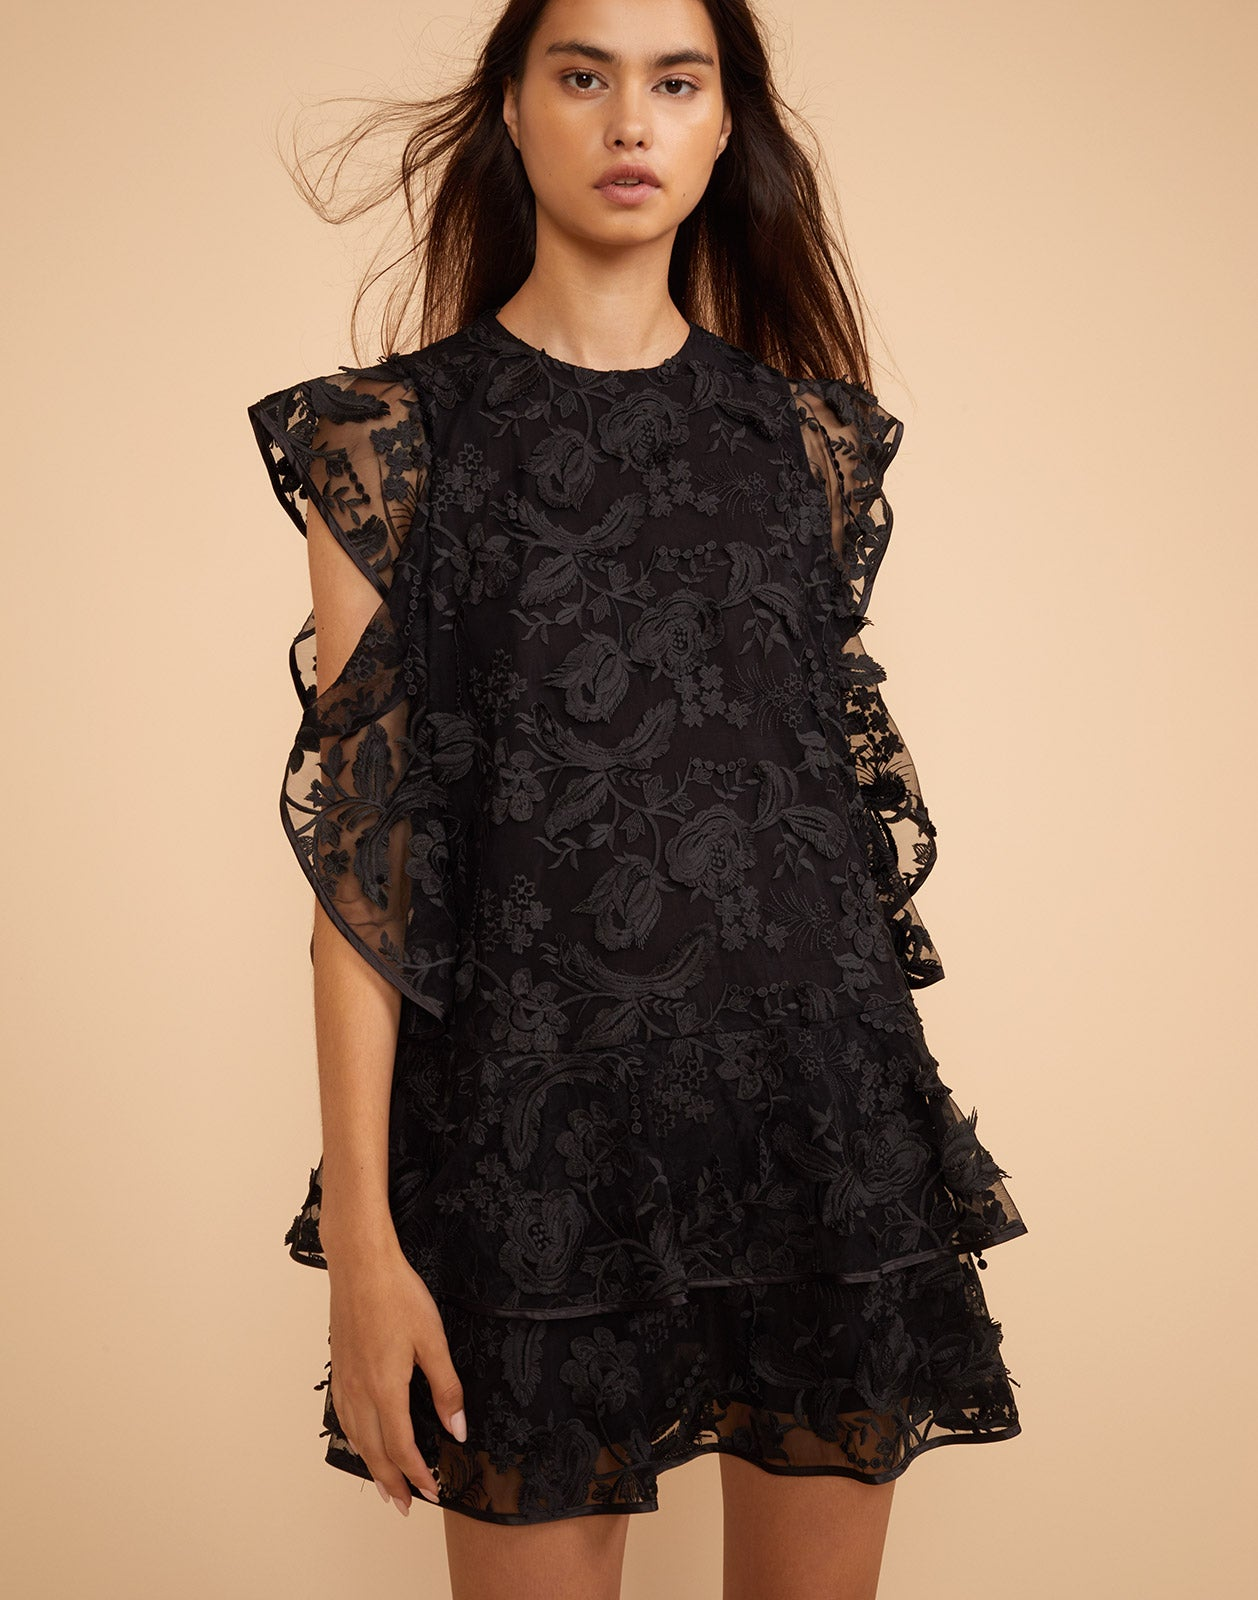 Close front view of the Madison floral lace flutter sleeve dress.